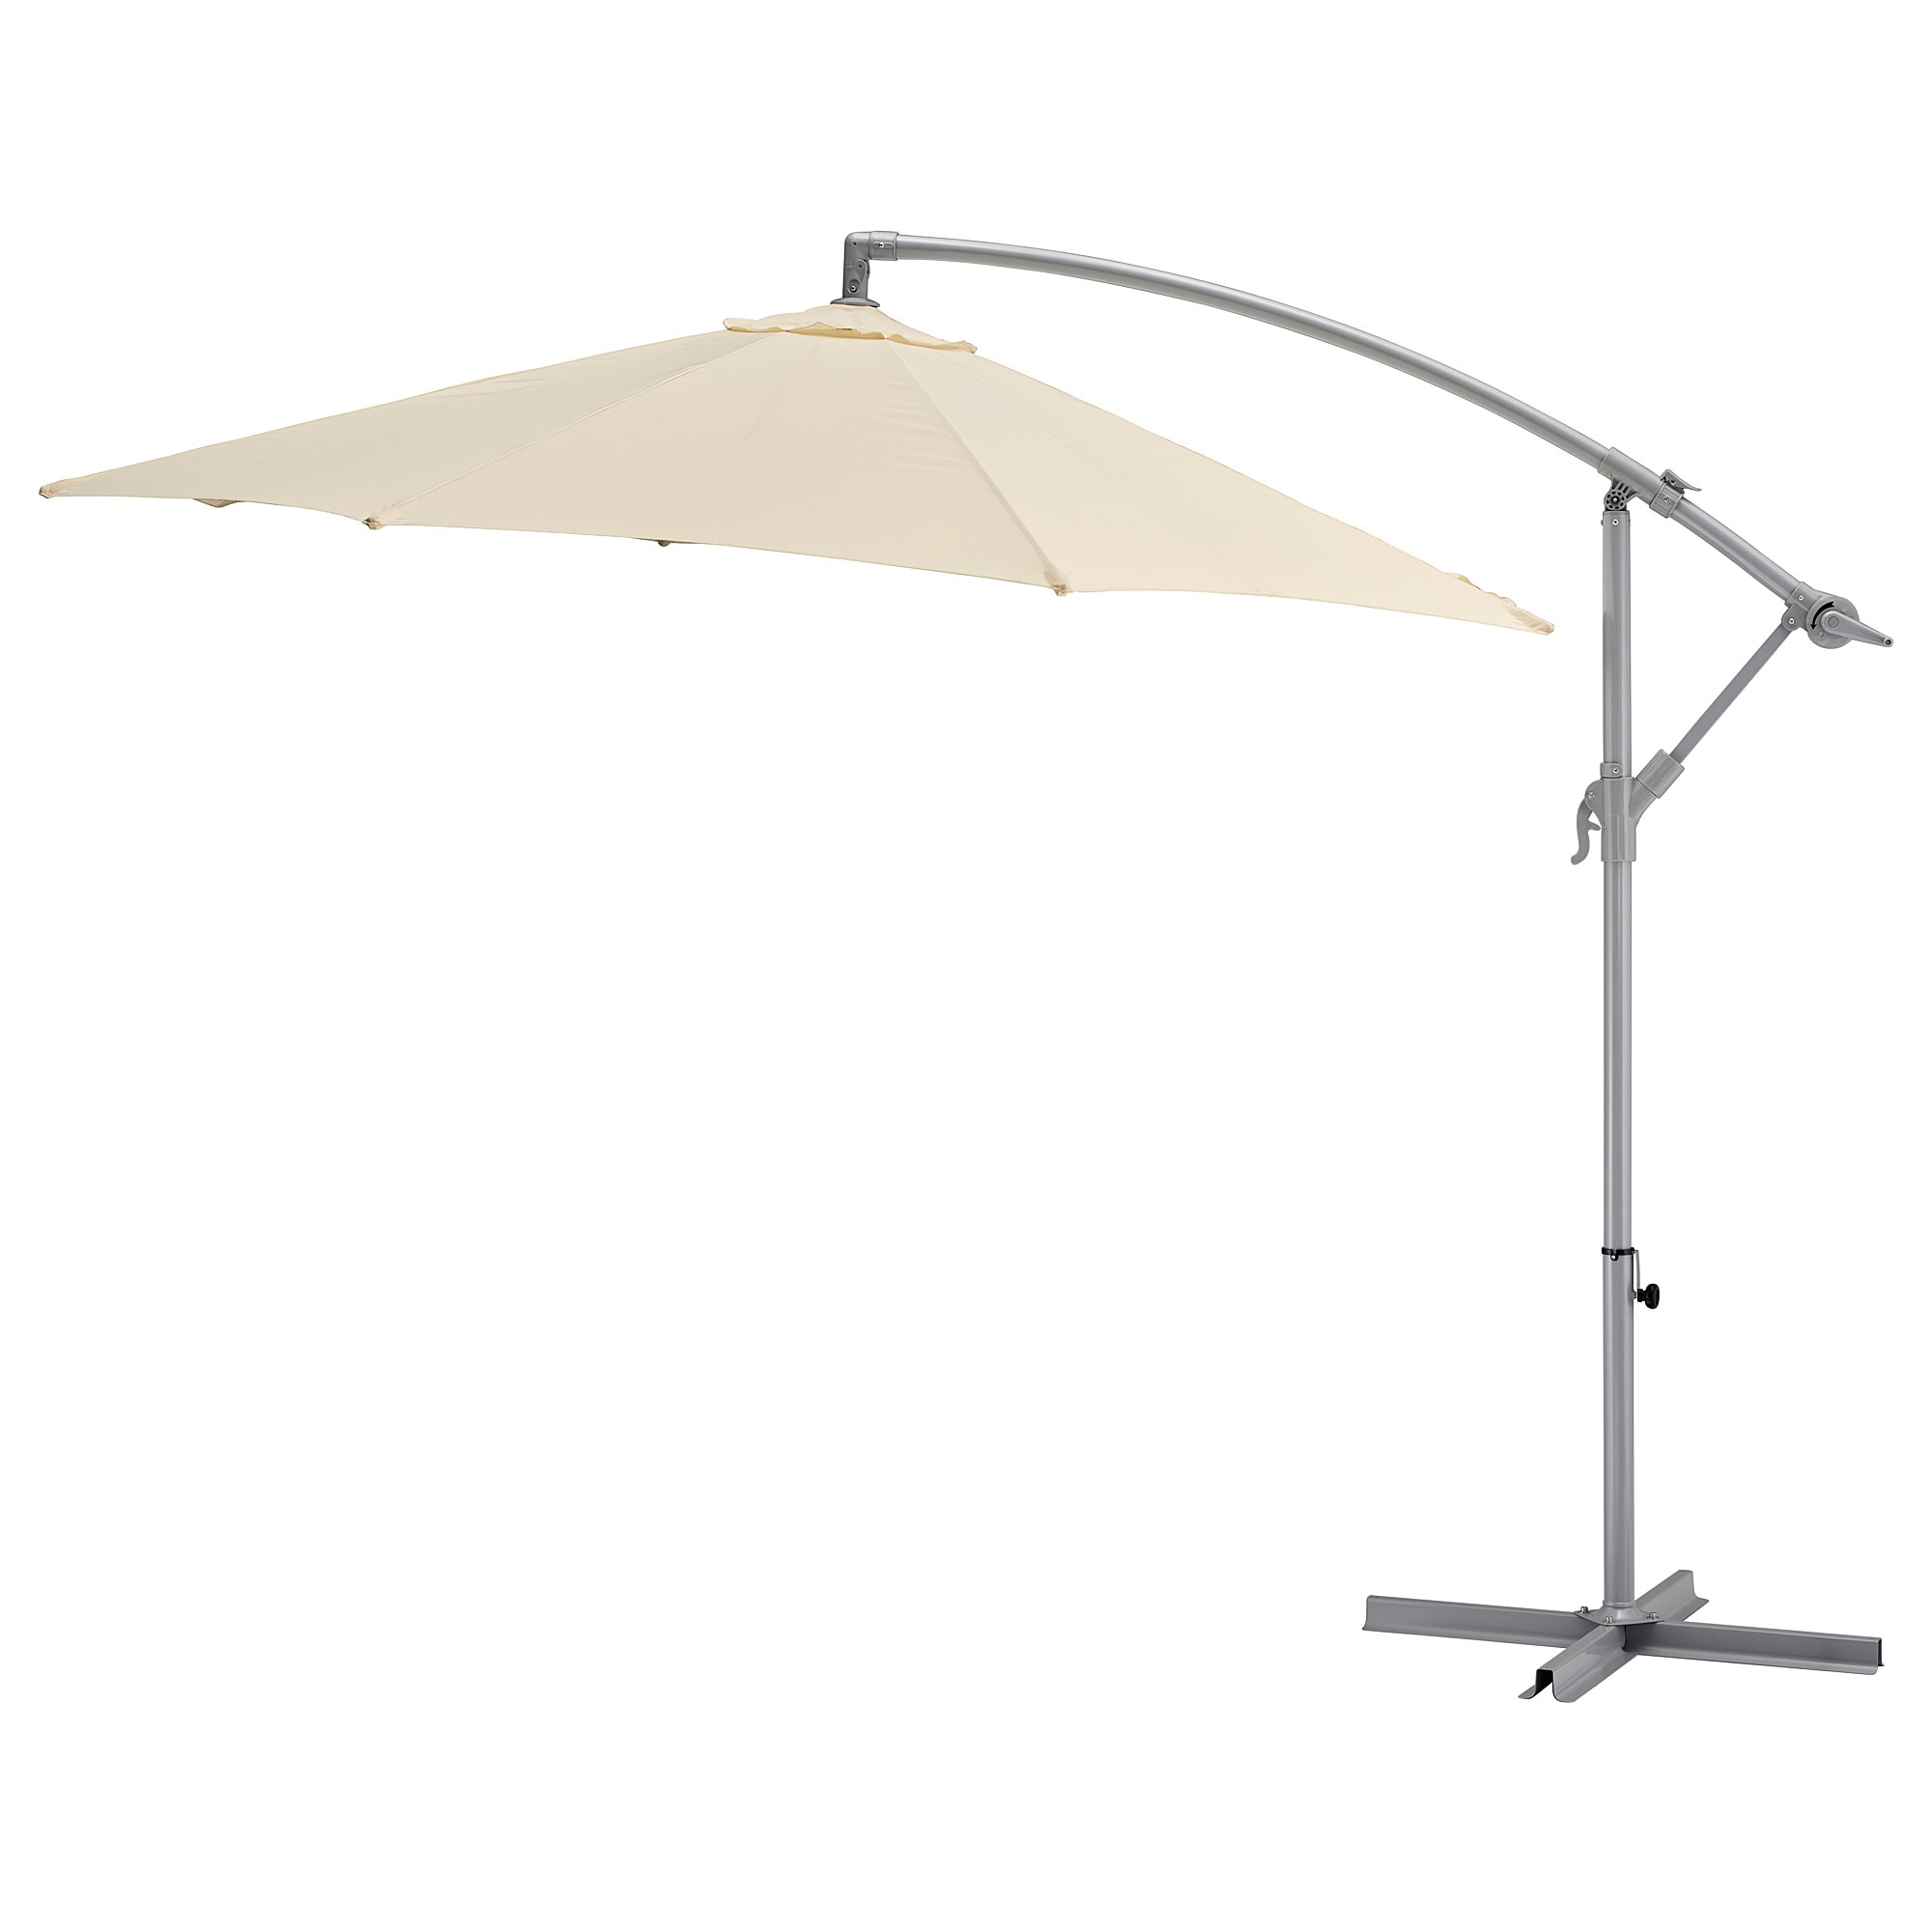 Most Up To Date Karlsö Offset Patio Umbrella, Beige Regarding Vassalboro Cantilever Umbrellas (View 16 of 20)